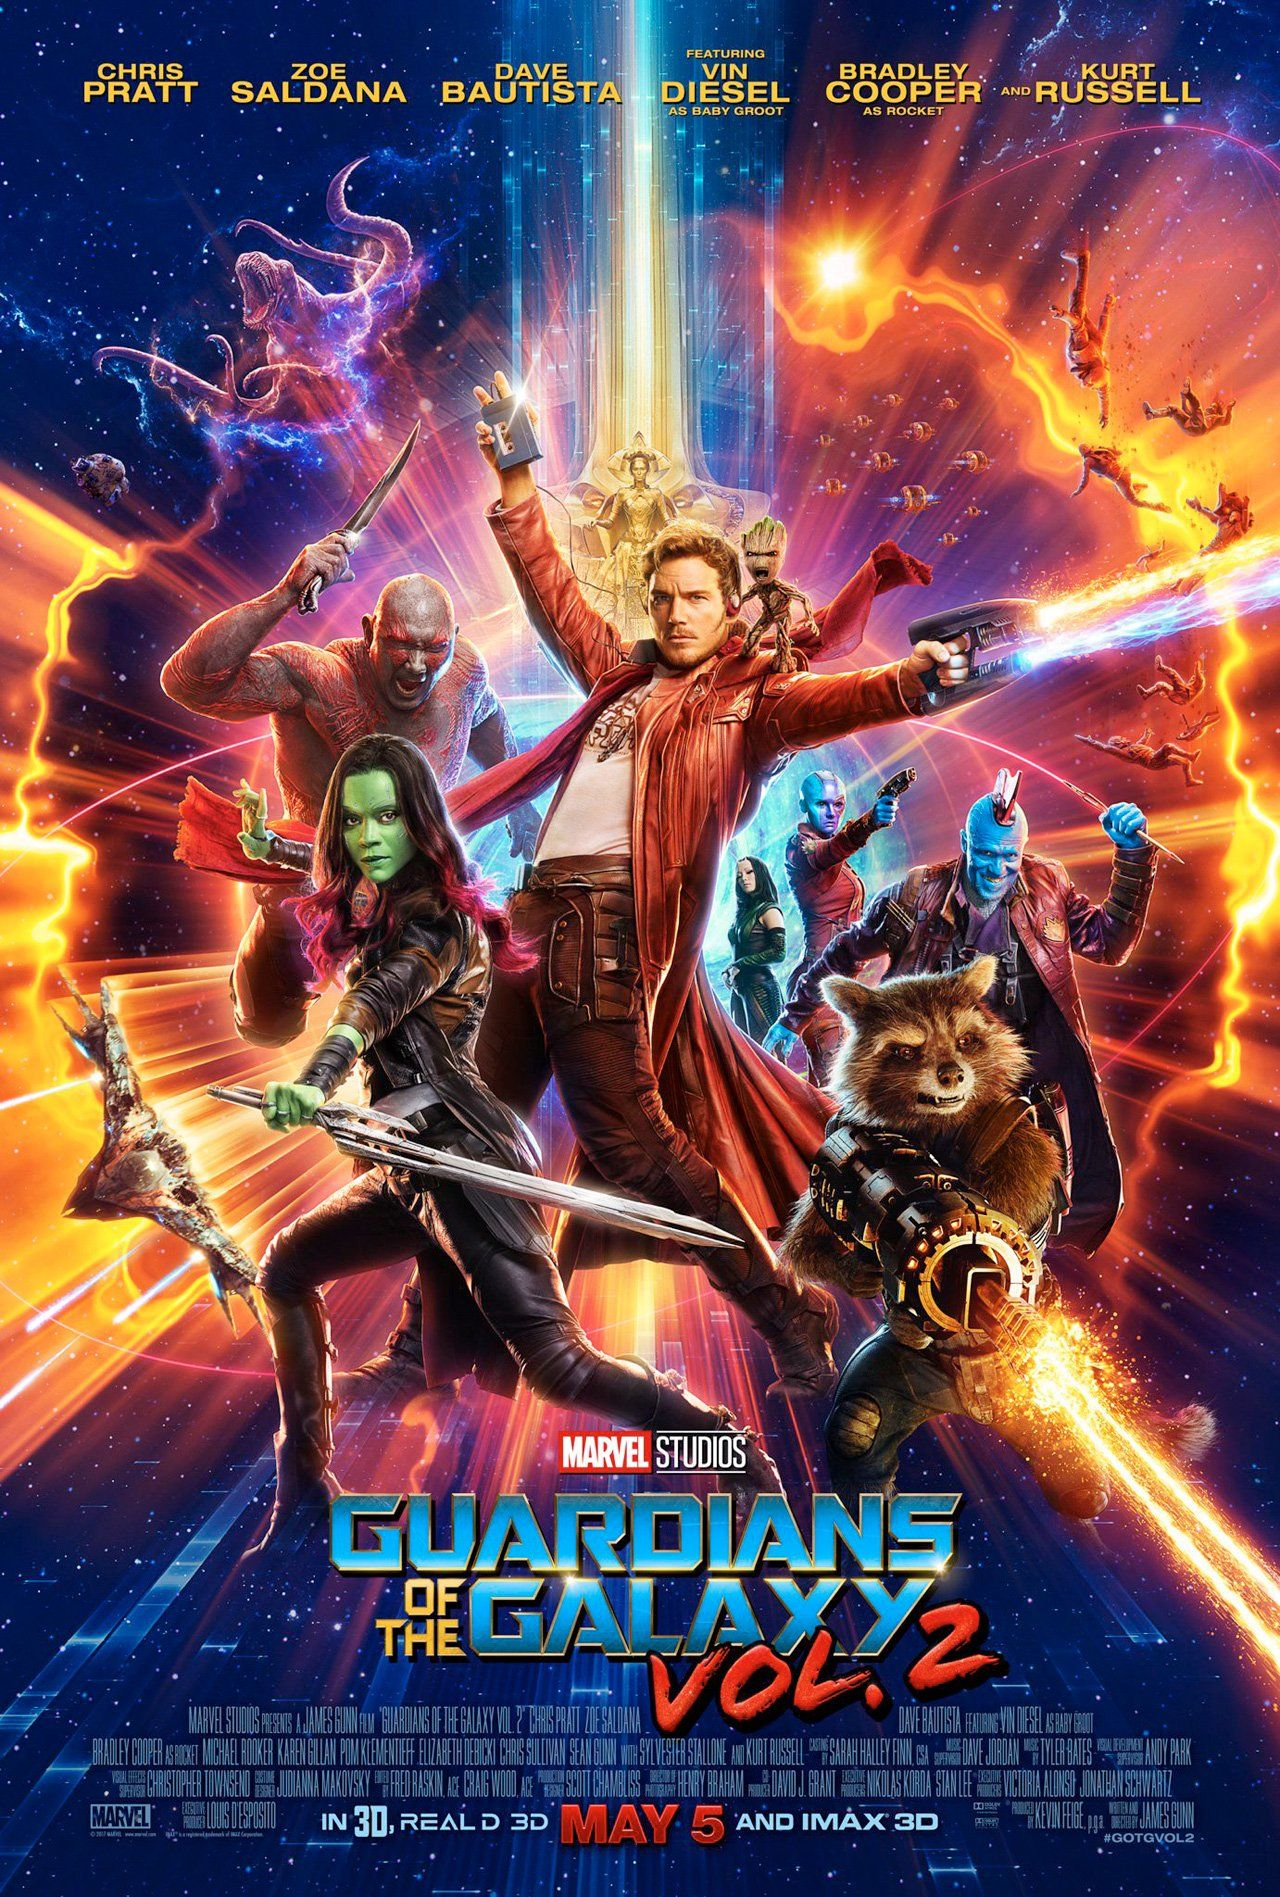 Guardians of the Galaxy Vol. 2 Official Poster